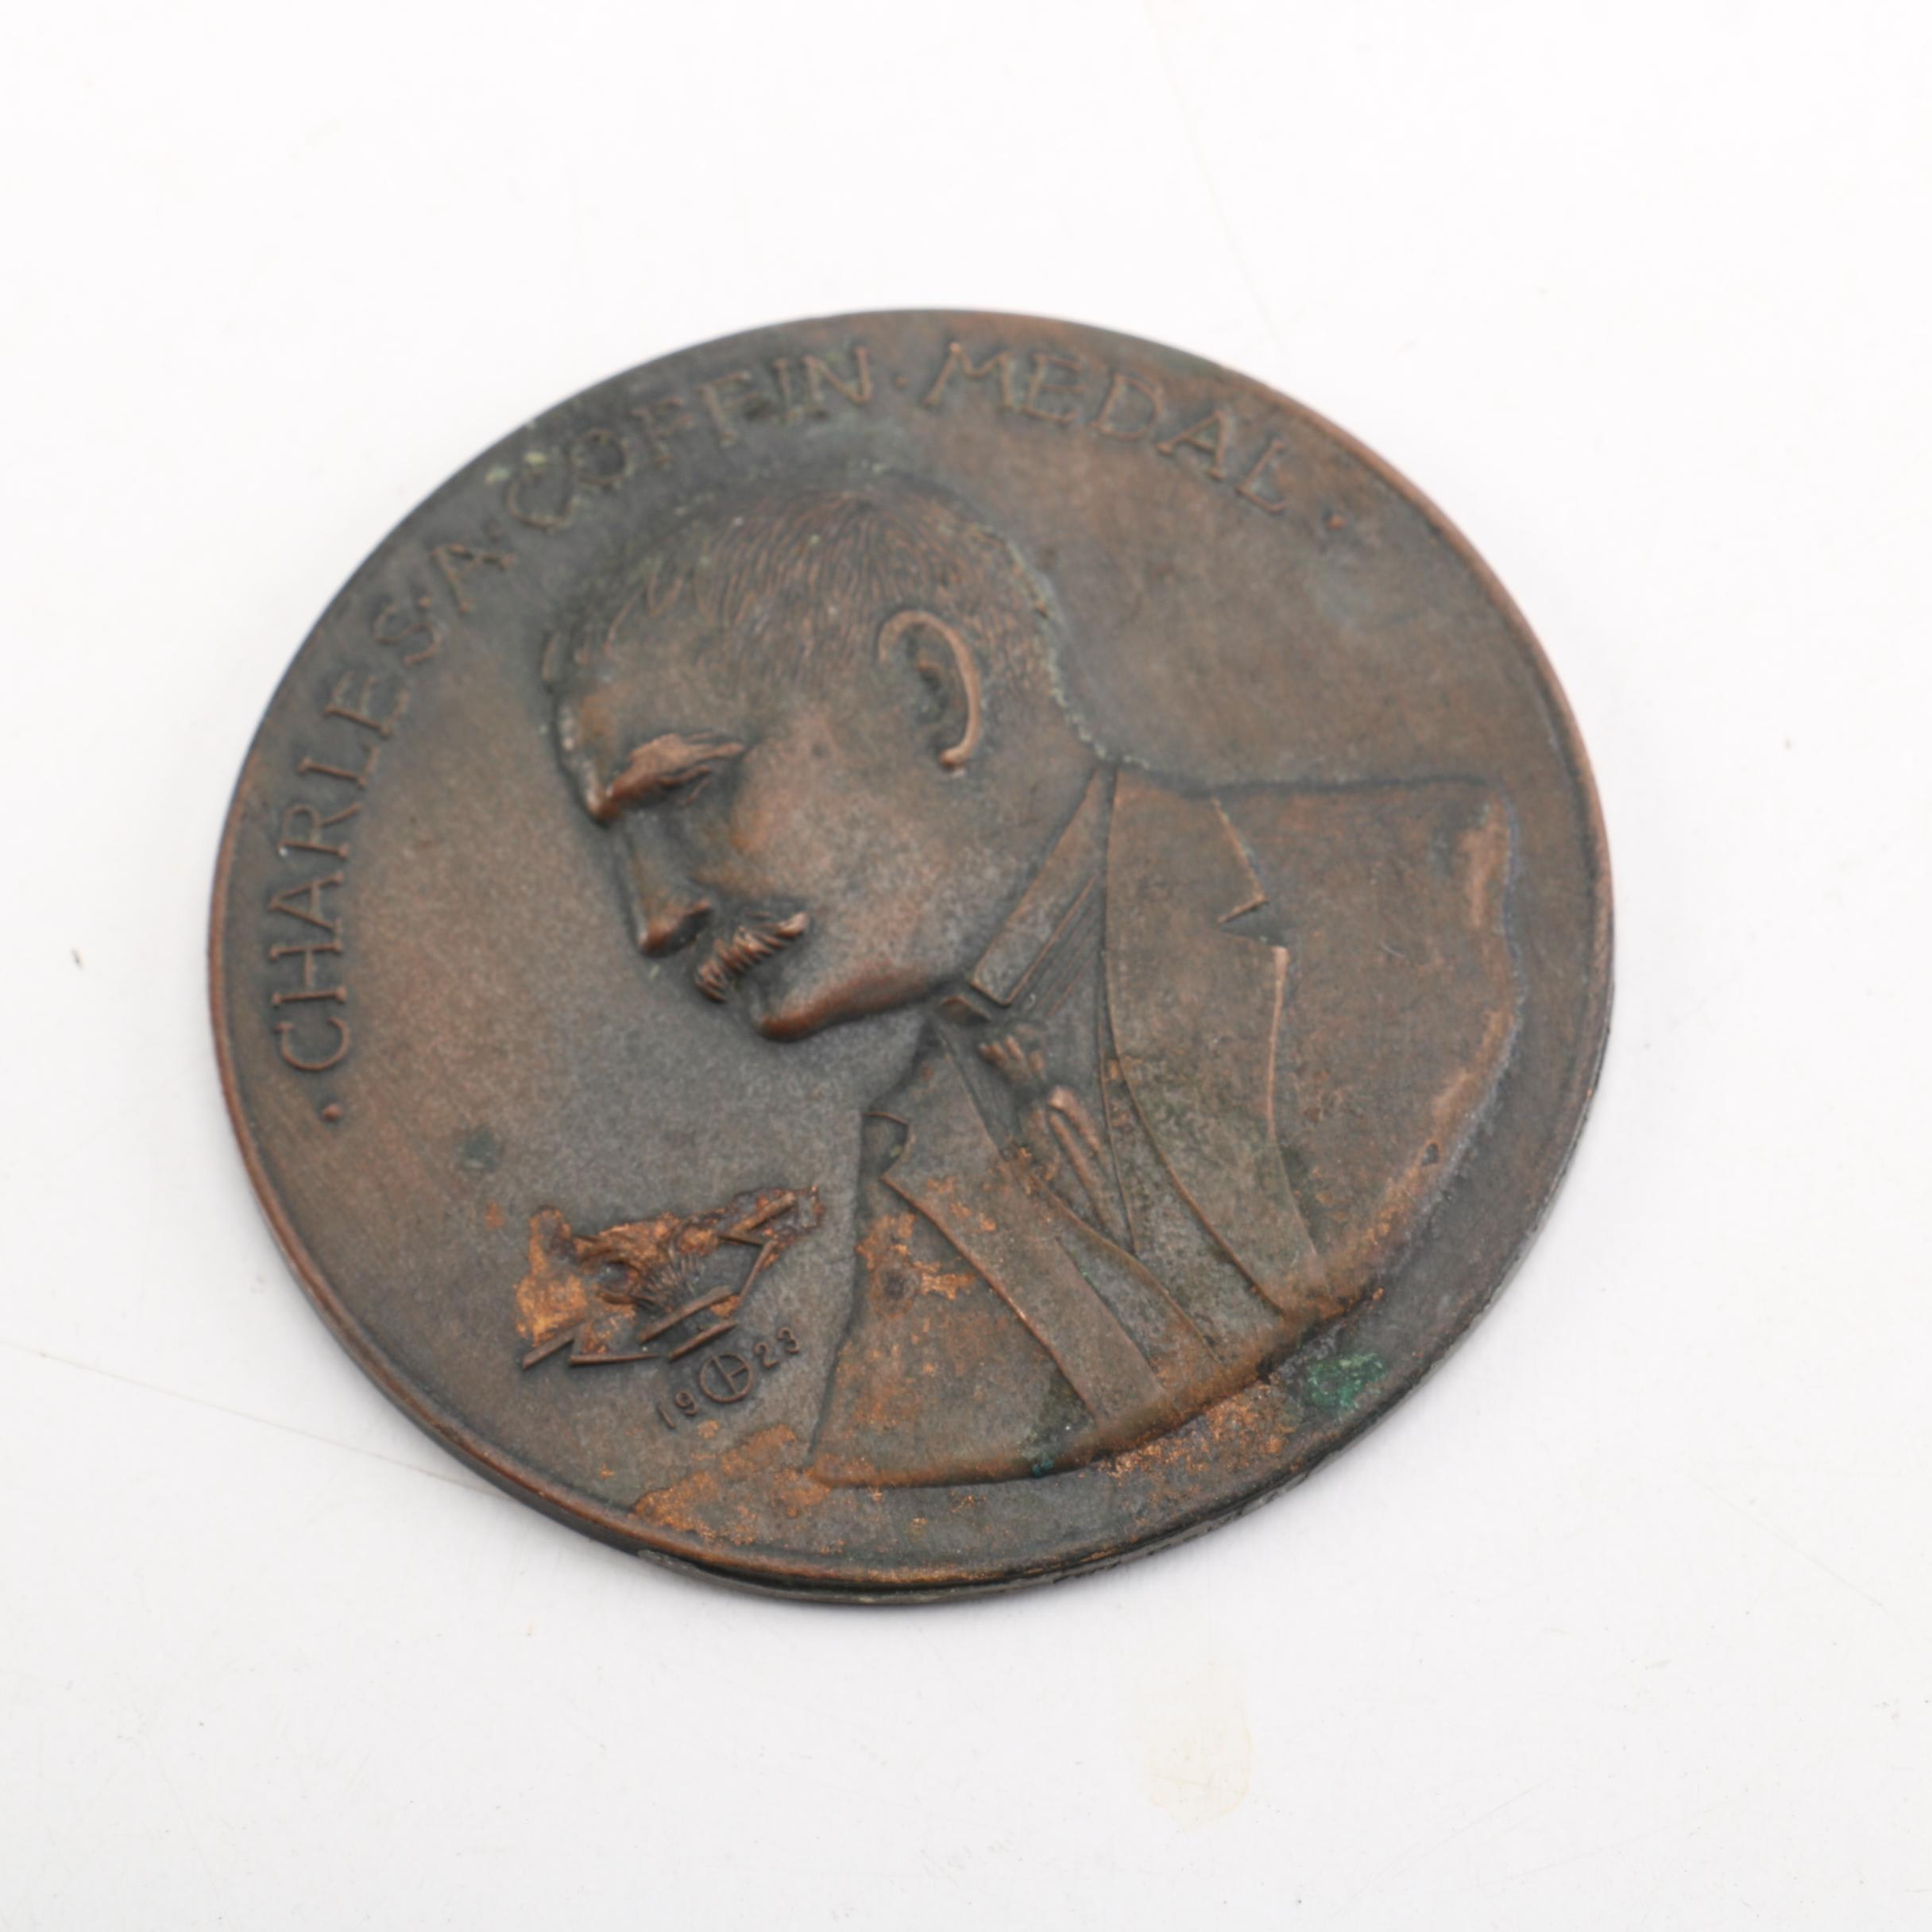 1948 Charles A. Coffin Medal